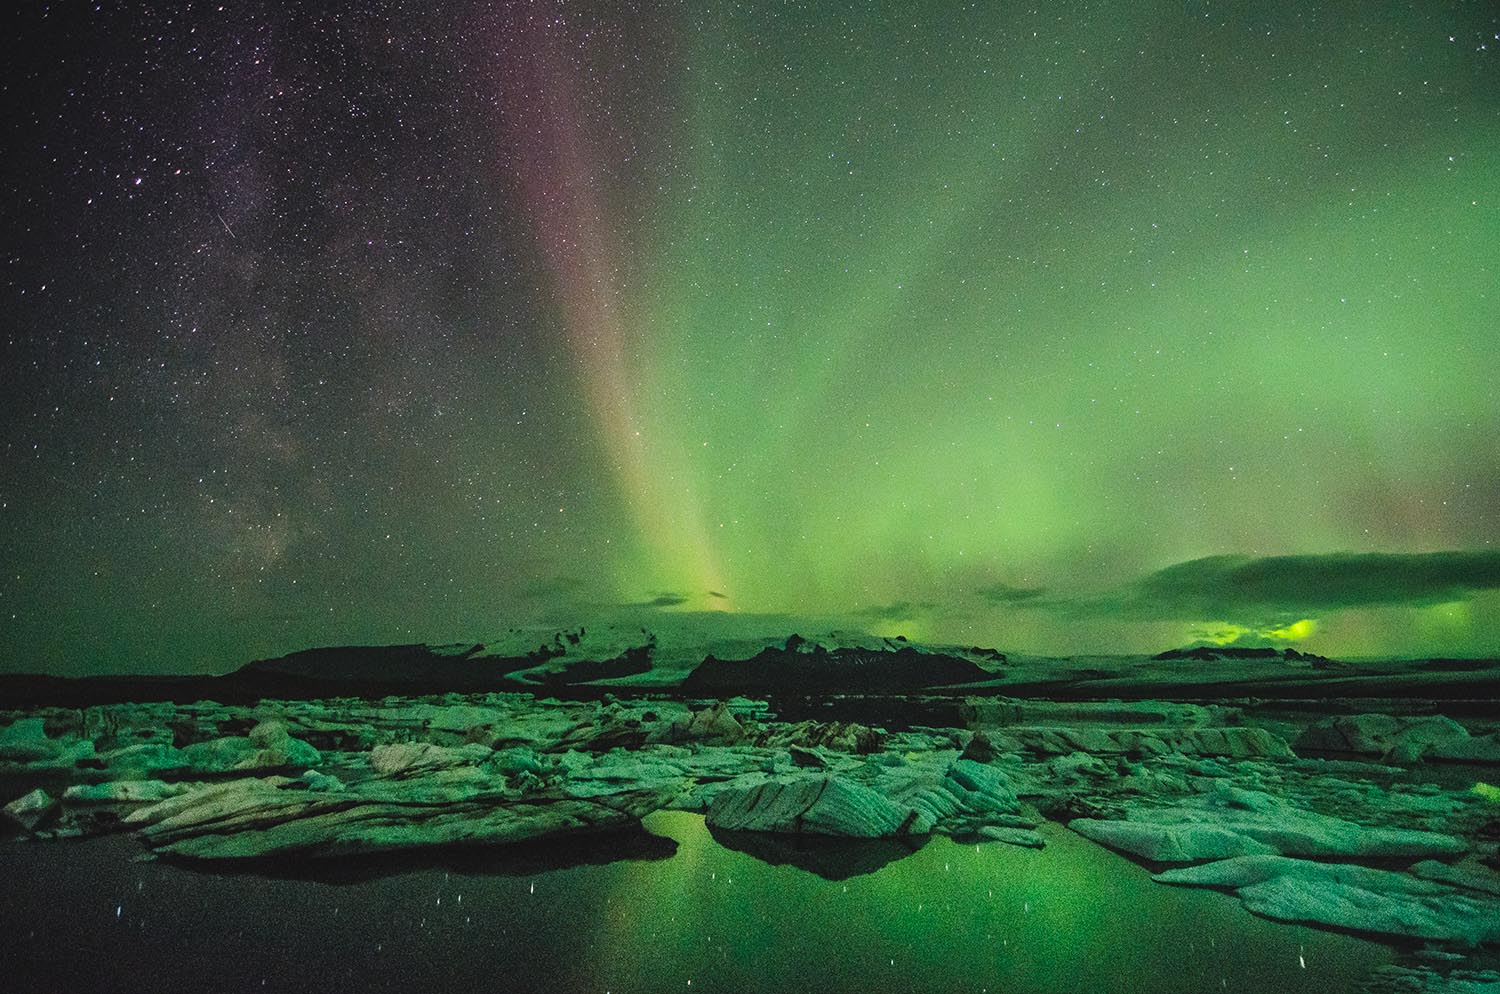 Viewing the Northern Lights in Iceland